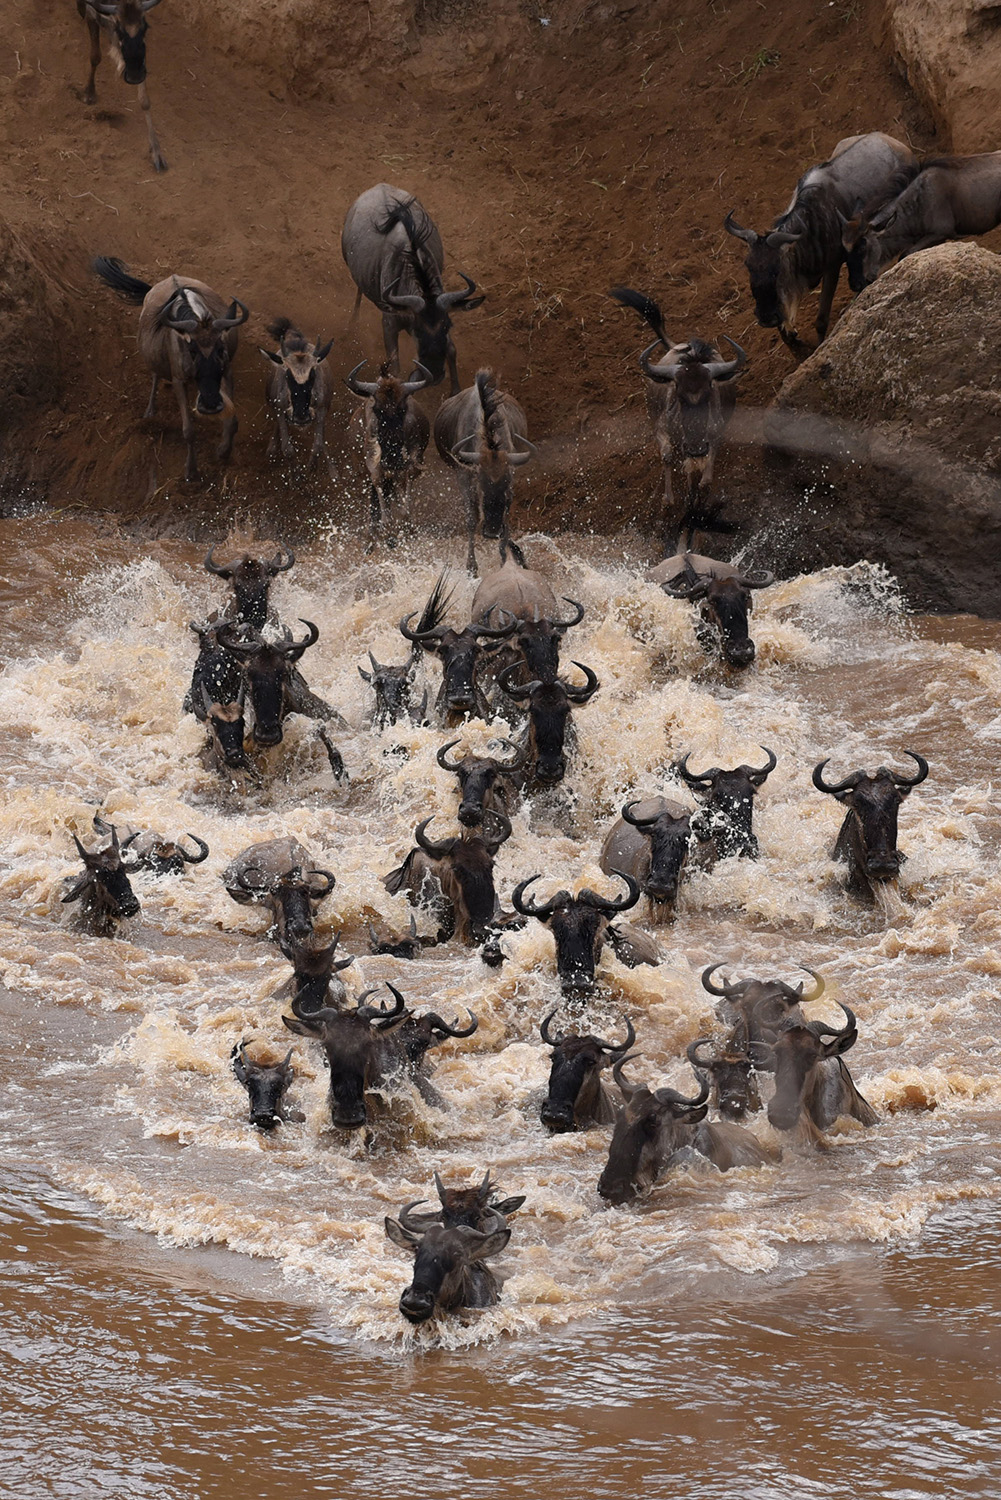 Wildebeest crossing during the great migration in the Maasai Mara